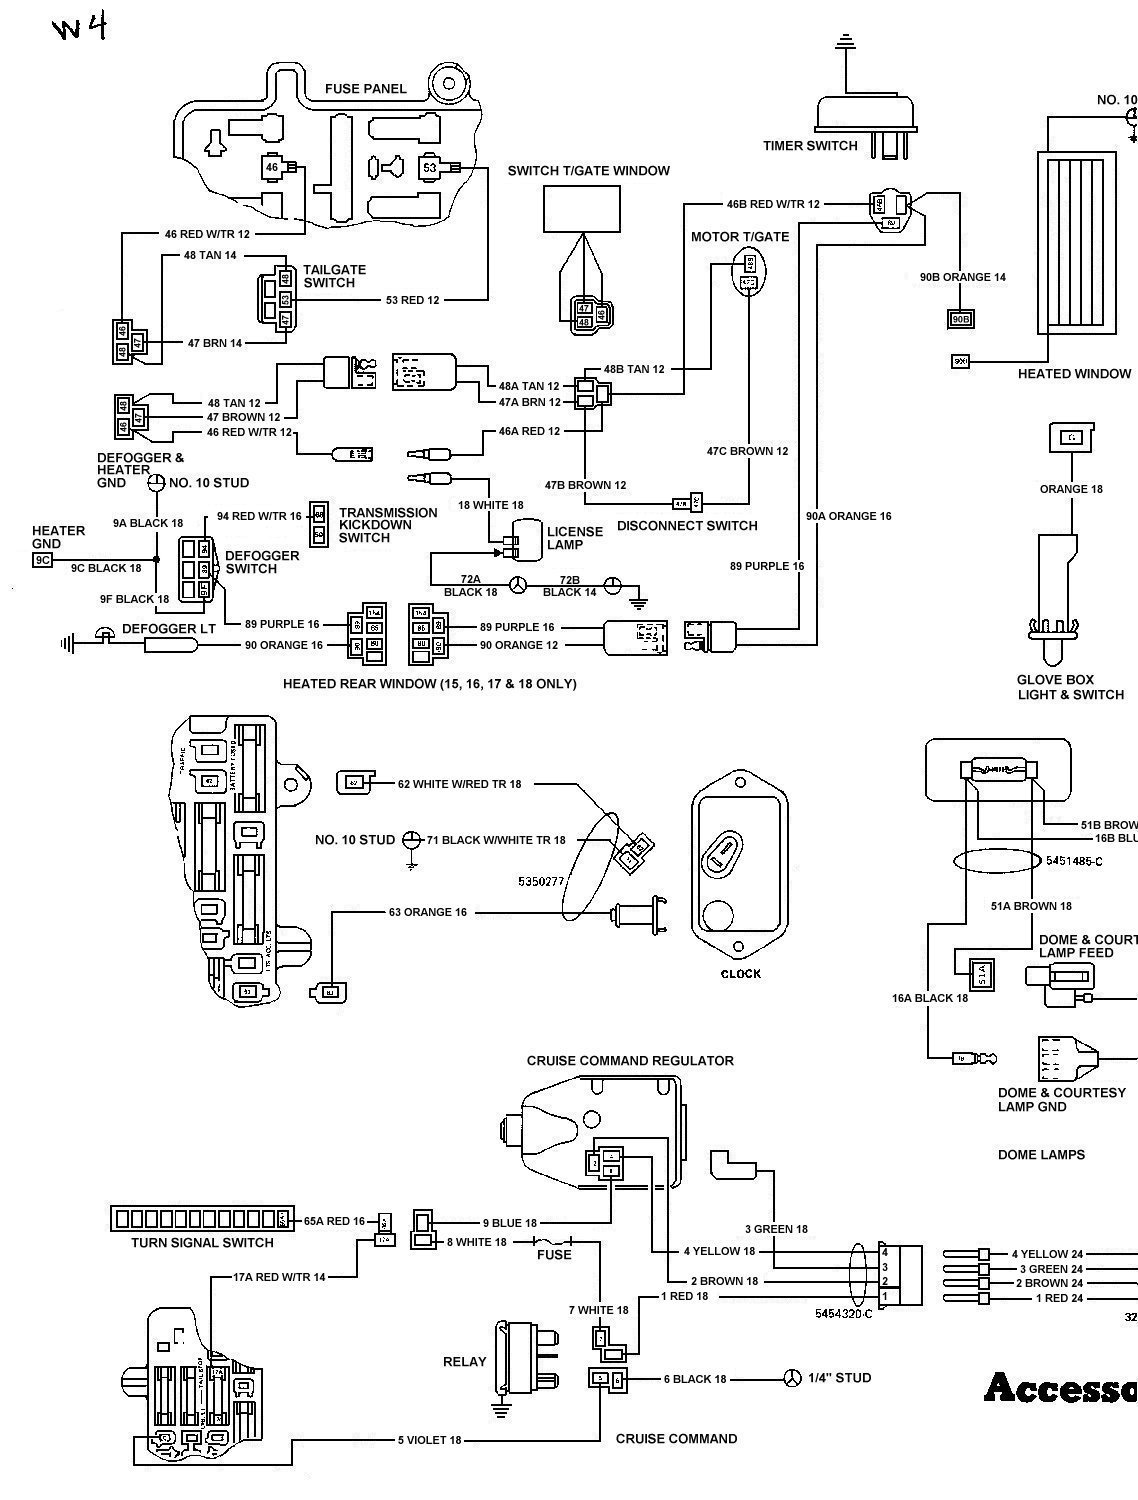 hight resolution of 1969 cj wiring diagram wiring diagram blog1969 cj wiring diagram wiring diagram for you 1969 cj